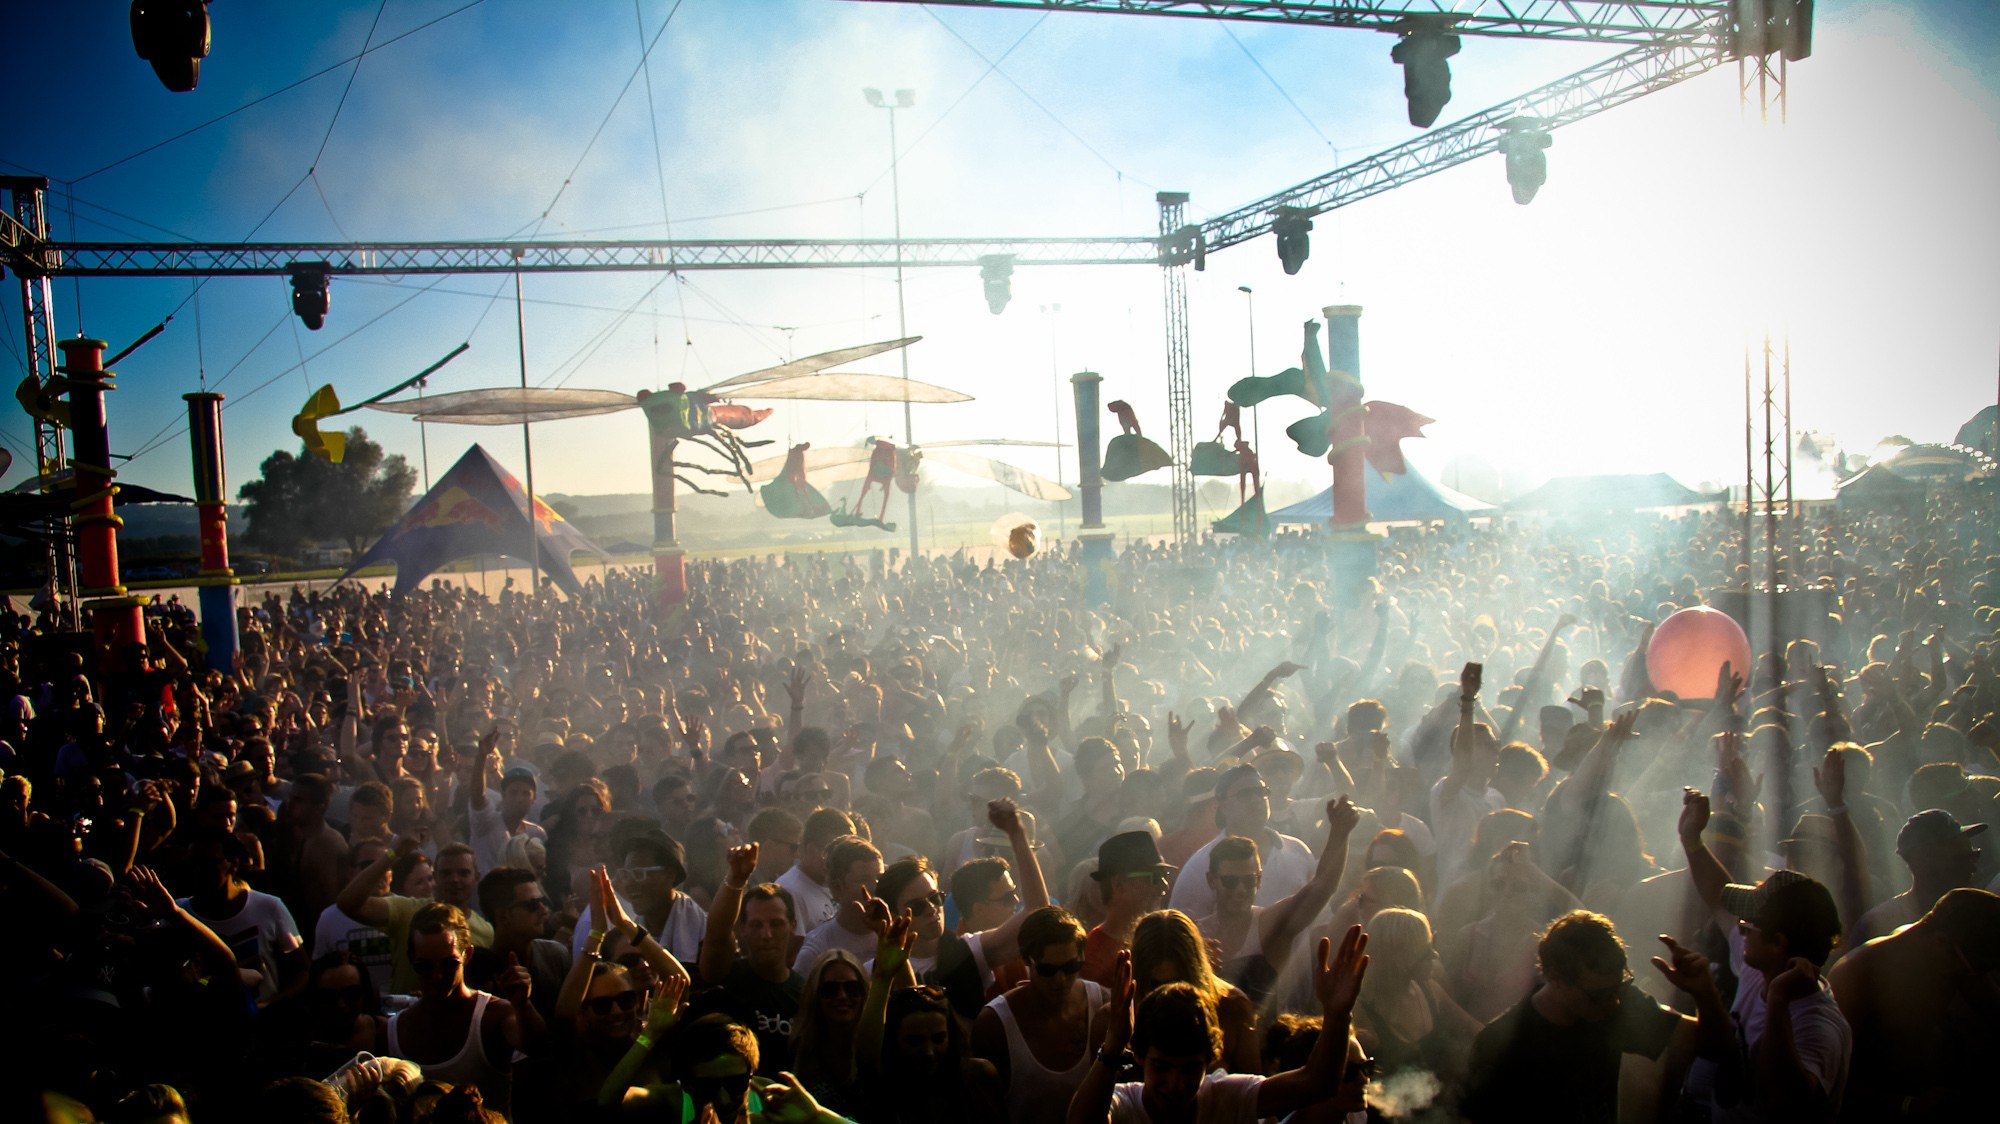 How Do We Stop Drug Deaths At Festivals?